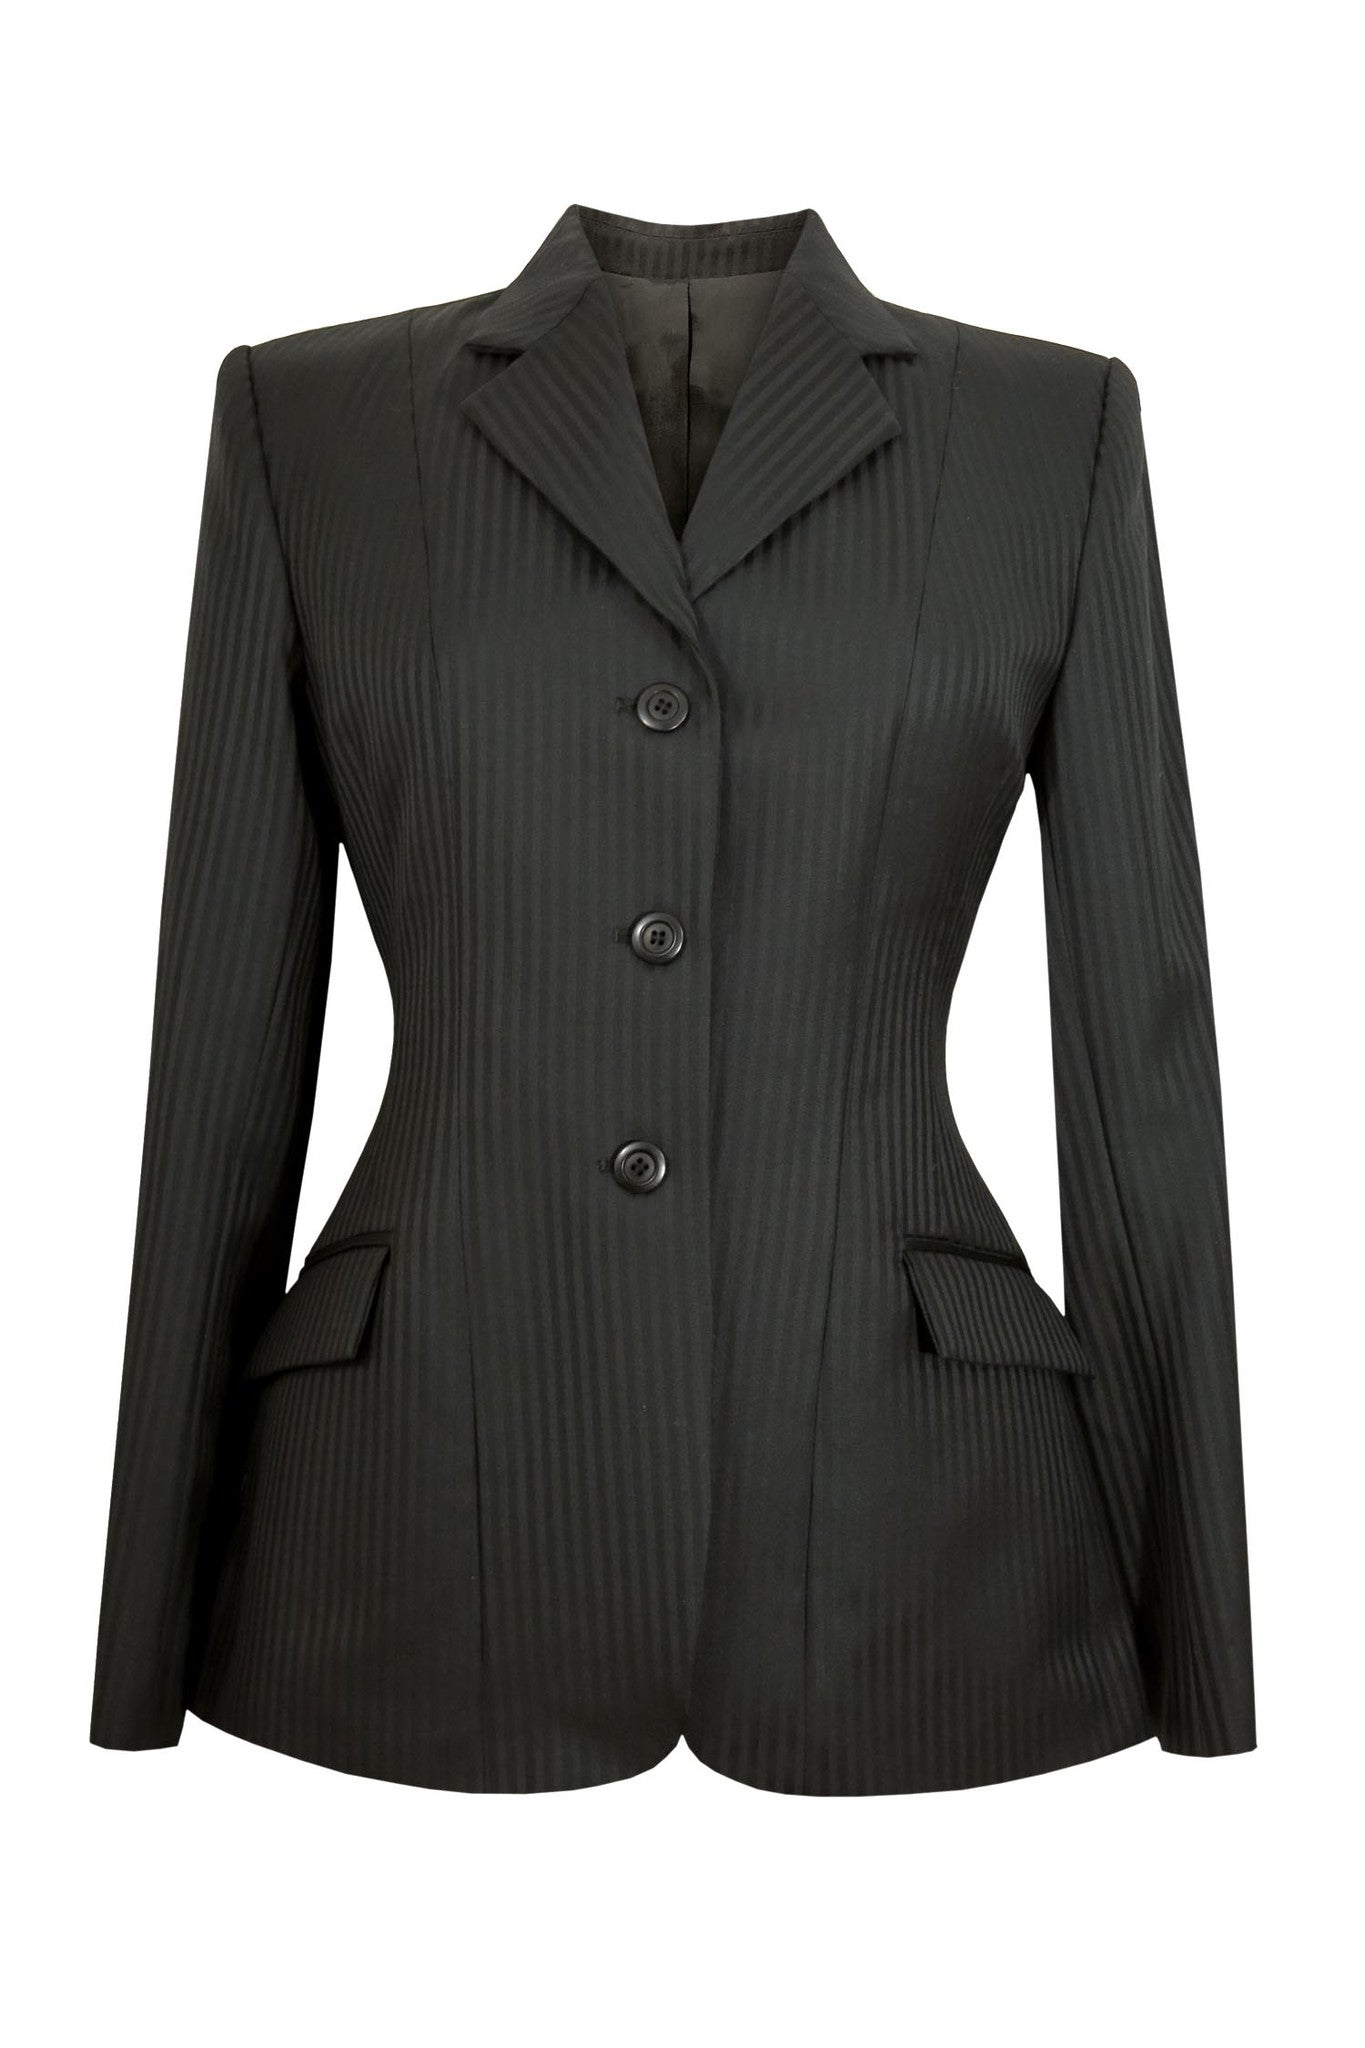 Black wool jacket with thick stripes.